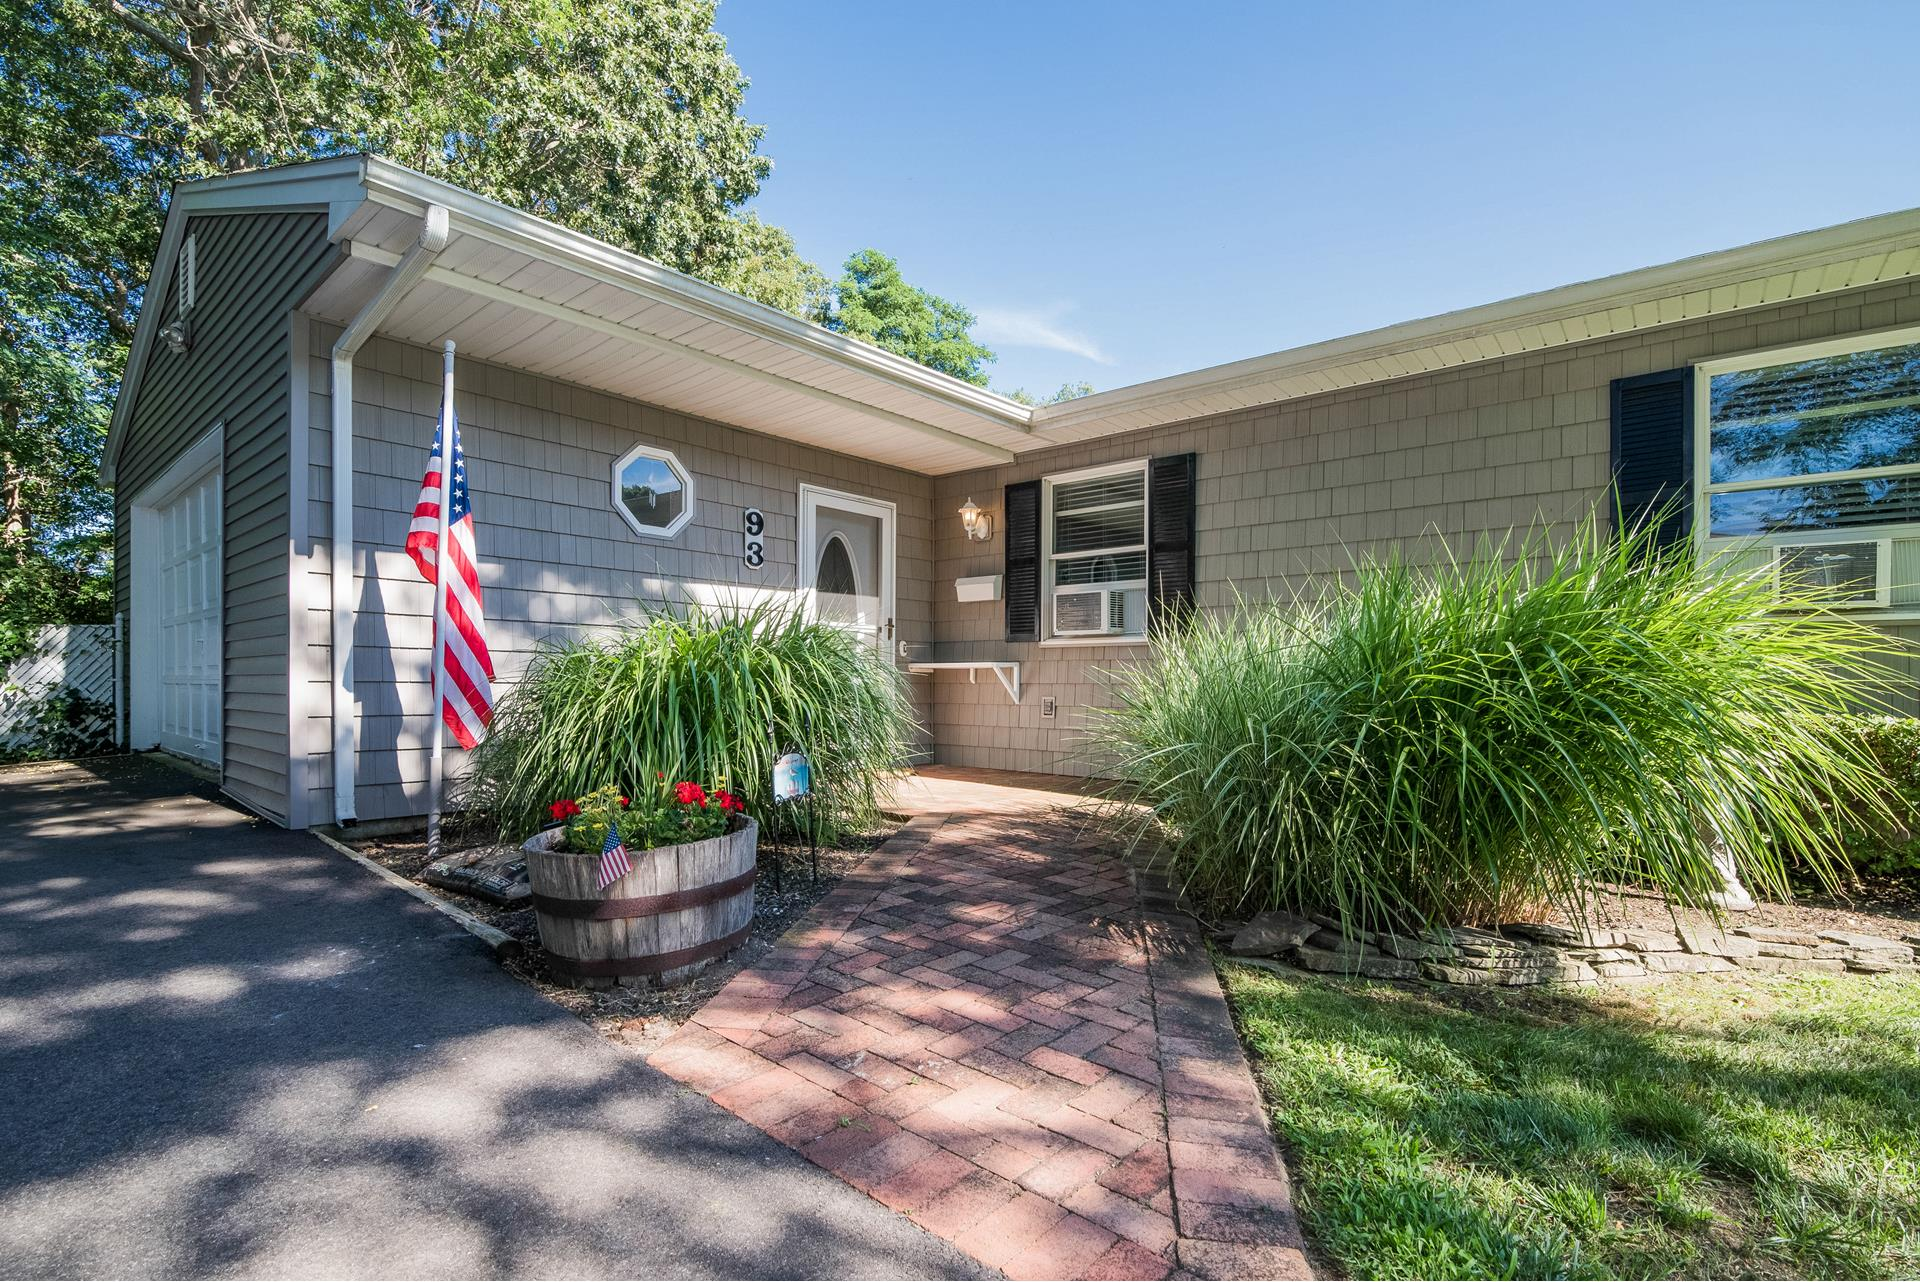 93 BIESELIN RD - BELLPORT VILLAGE, NEW YORK